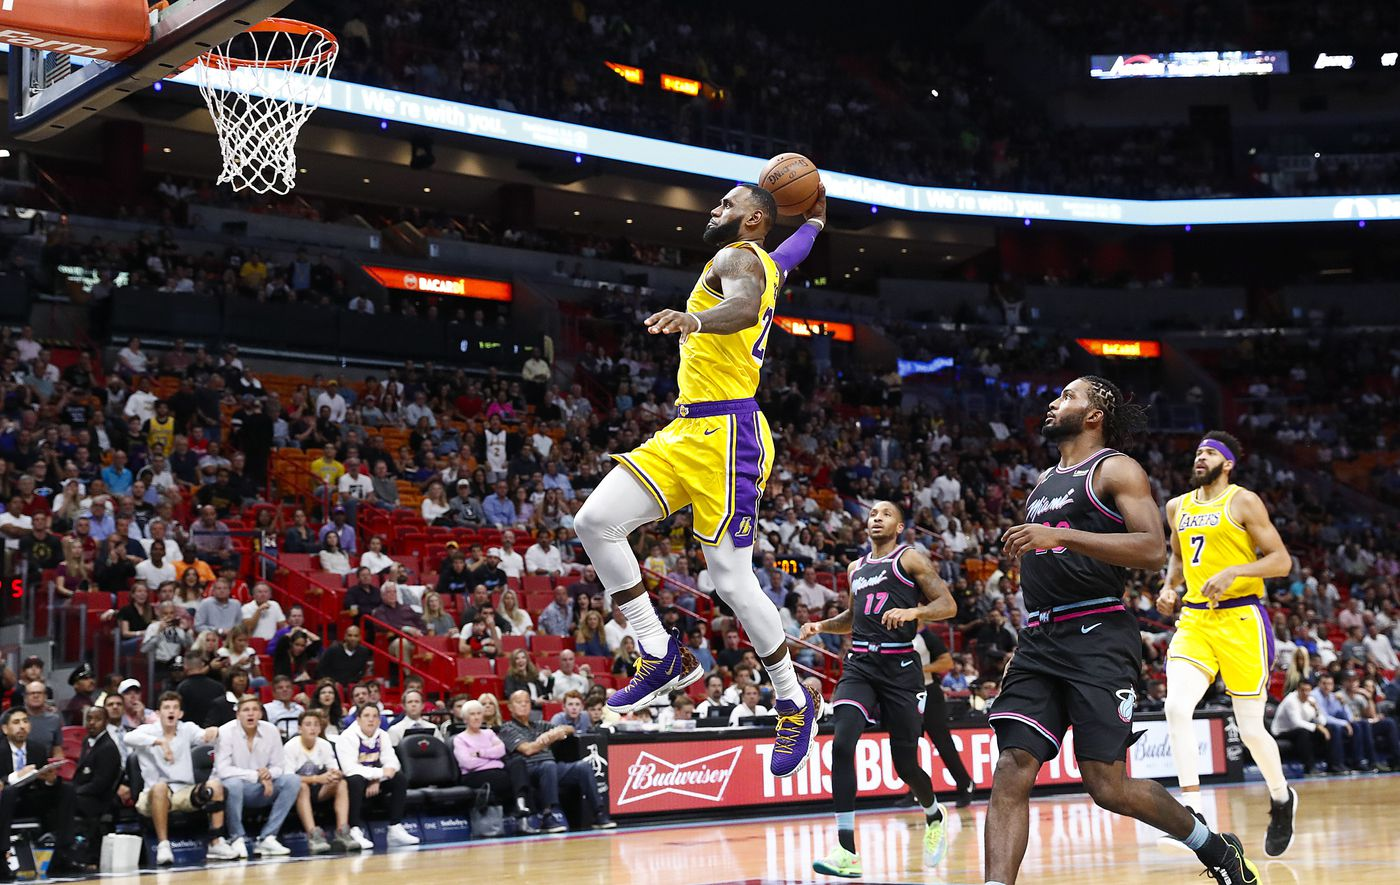 Los Angeles Lakers forward LeBron James scores during the first quarter of an NBA basketball game